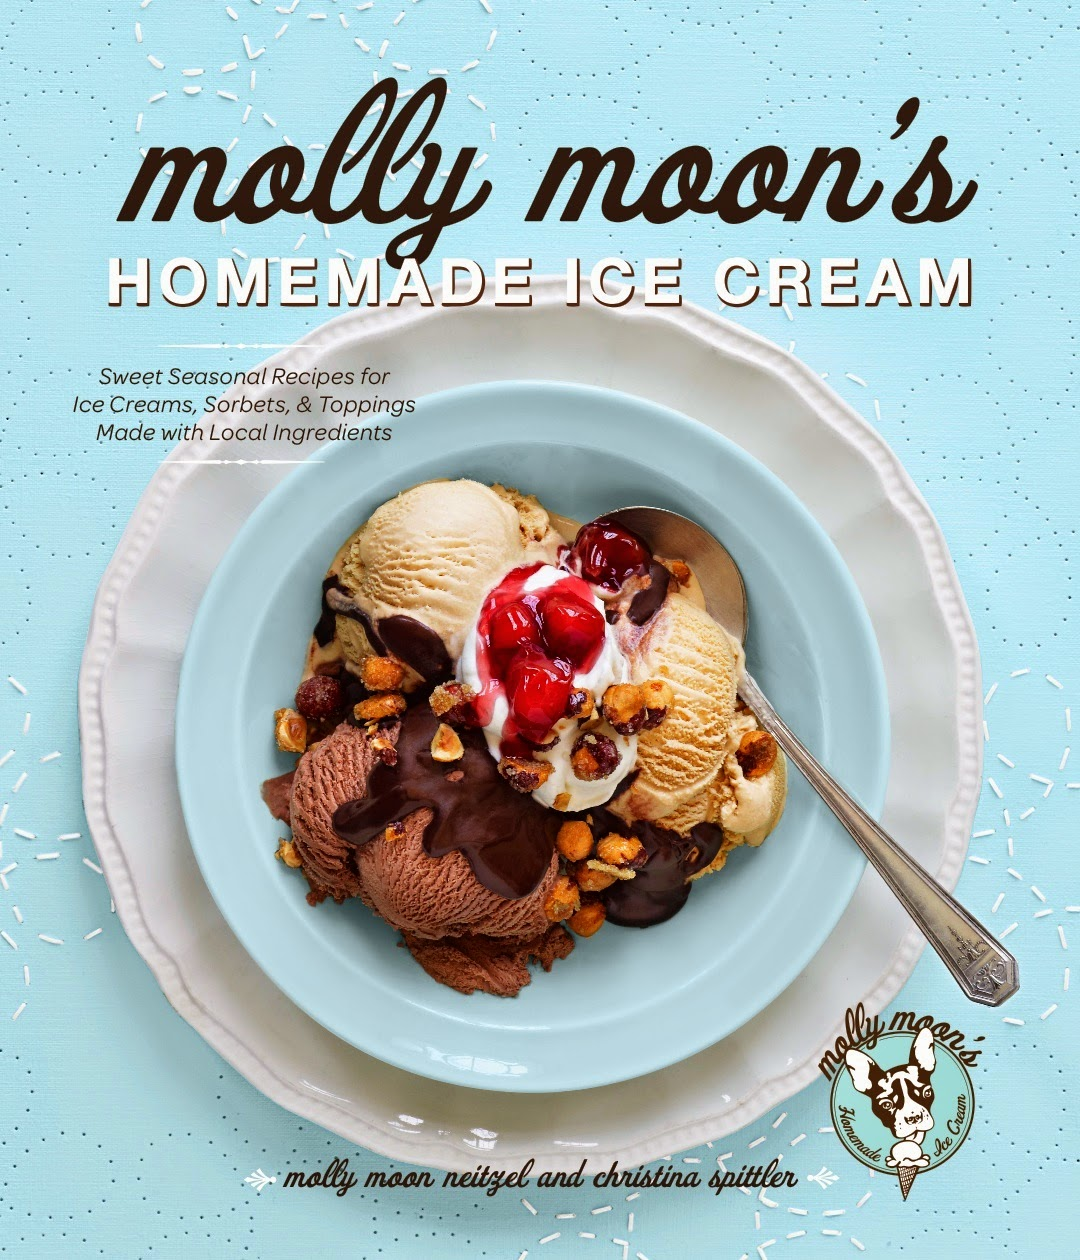 Metropolitan Market's Free Ice Cream Socials + Molly Moon's Homemade Ice Cream book giveaway